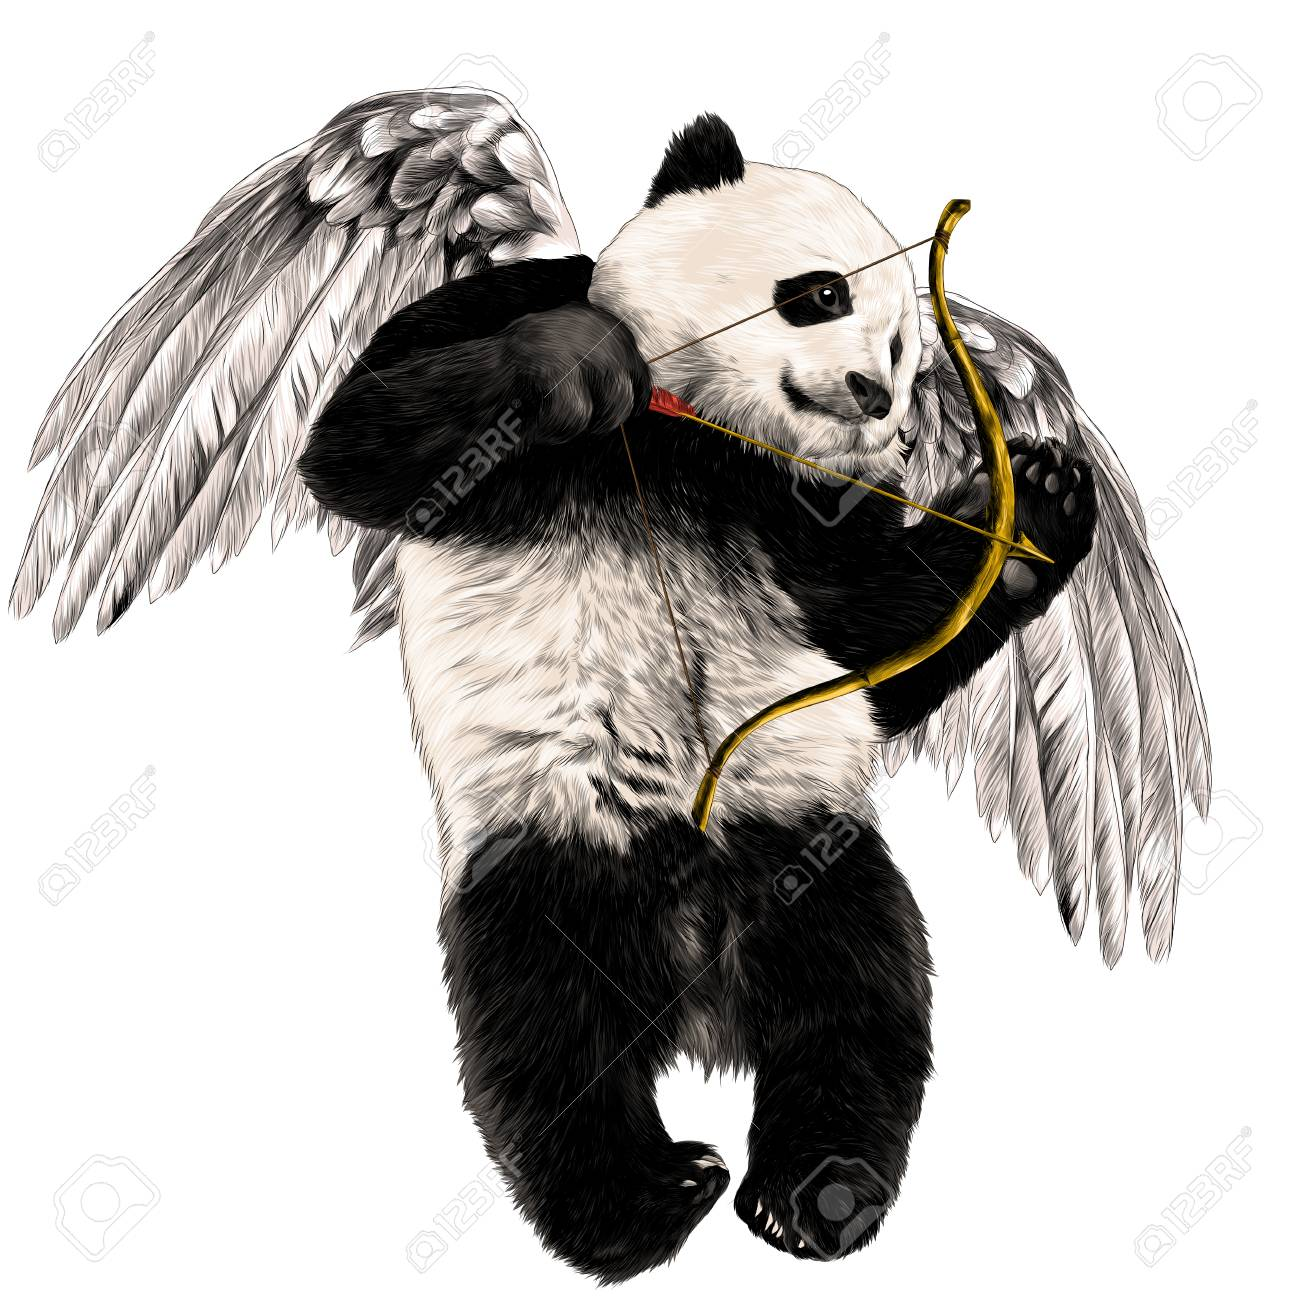 Panda angel with wings and a bow flies sketch vector graphics color picture - 95809889